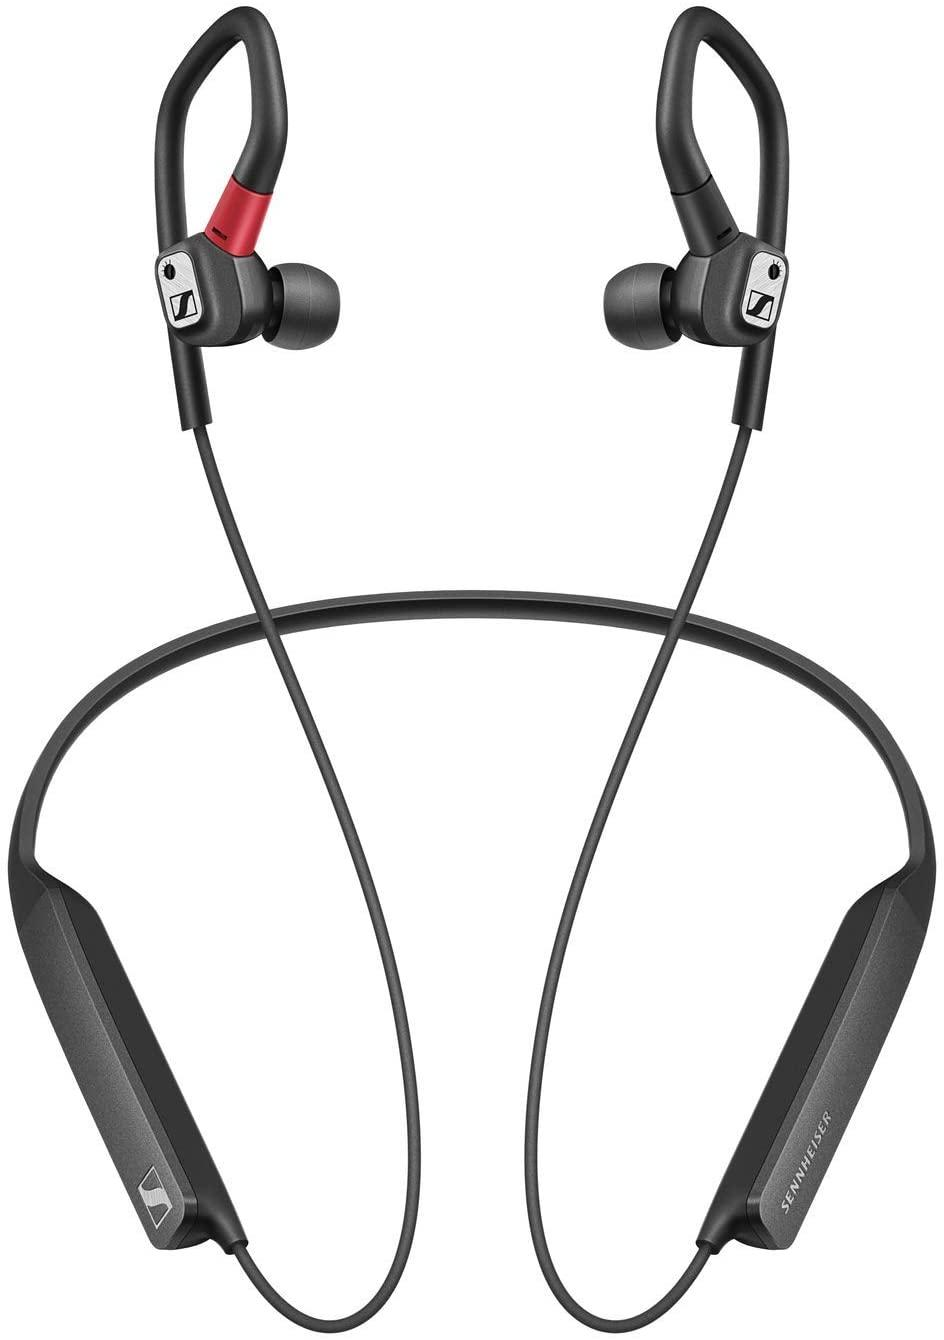 Sennheiser IE 80S Bt Audiophile In-Ear Bluetooth Headphone are perfect for true music lovers.